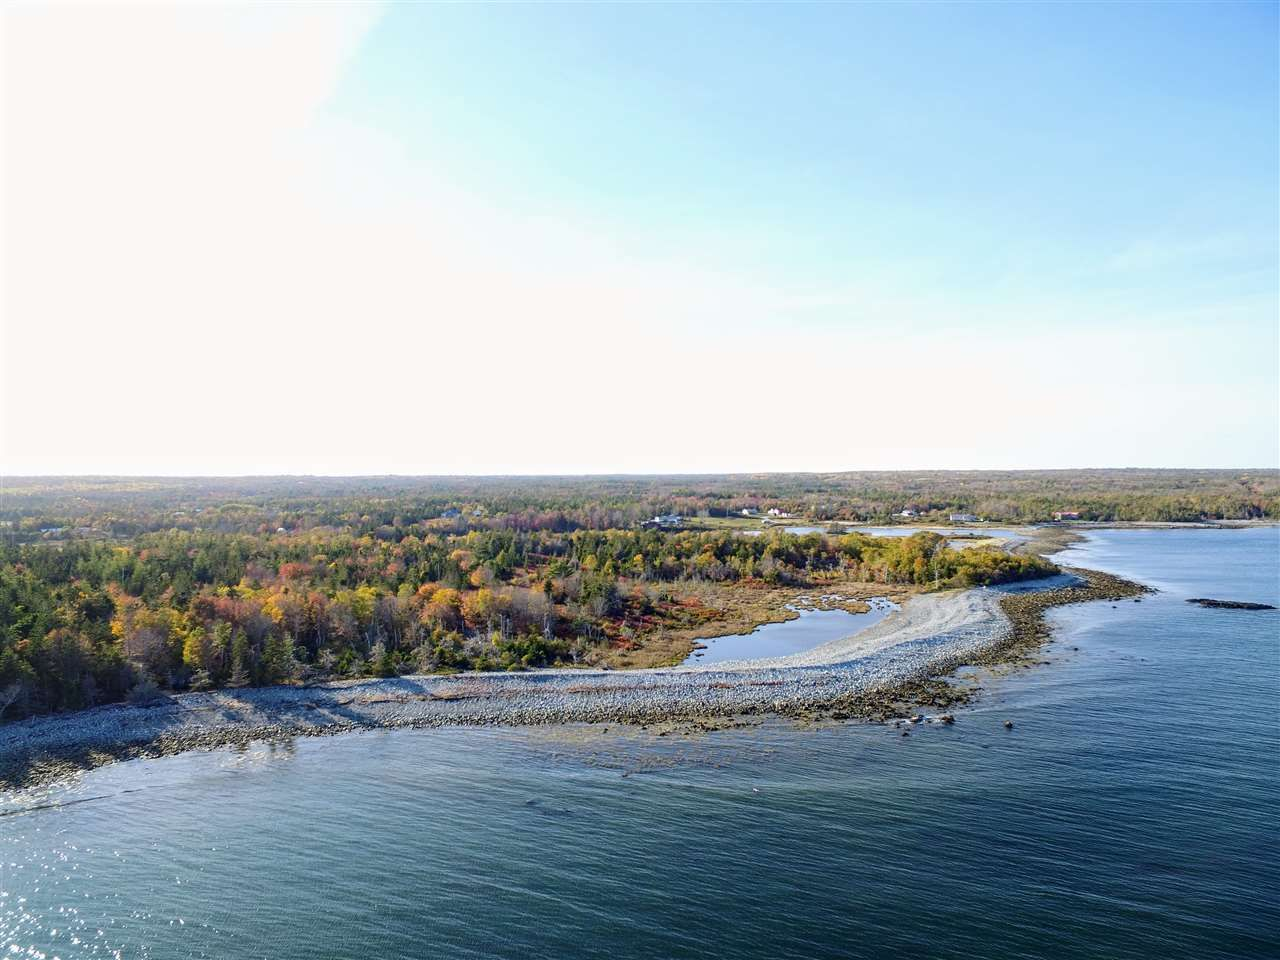 Main Photo: Lots 11-12 McLeans Island Road in Jordan Bay: 407-Shelburne County Vacant Land for sale (South Shore)  : MLS®# 202022901